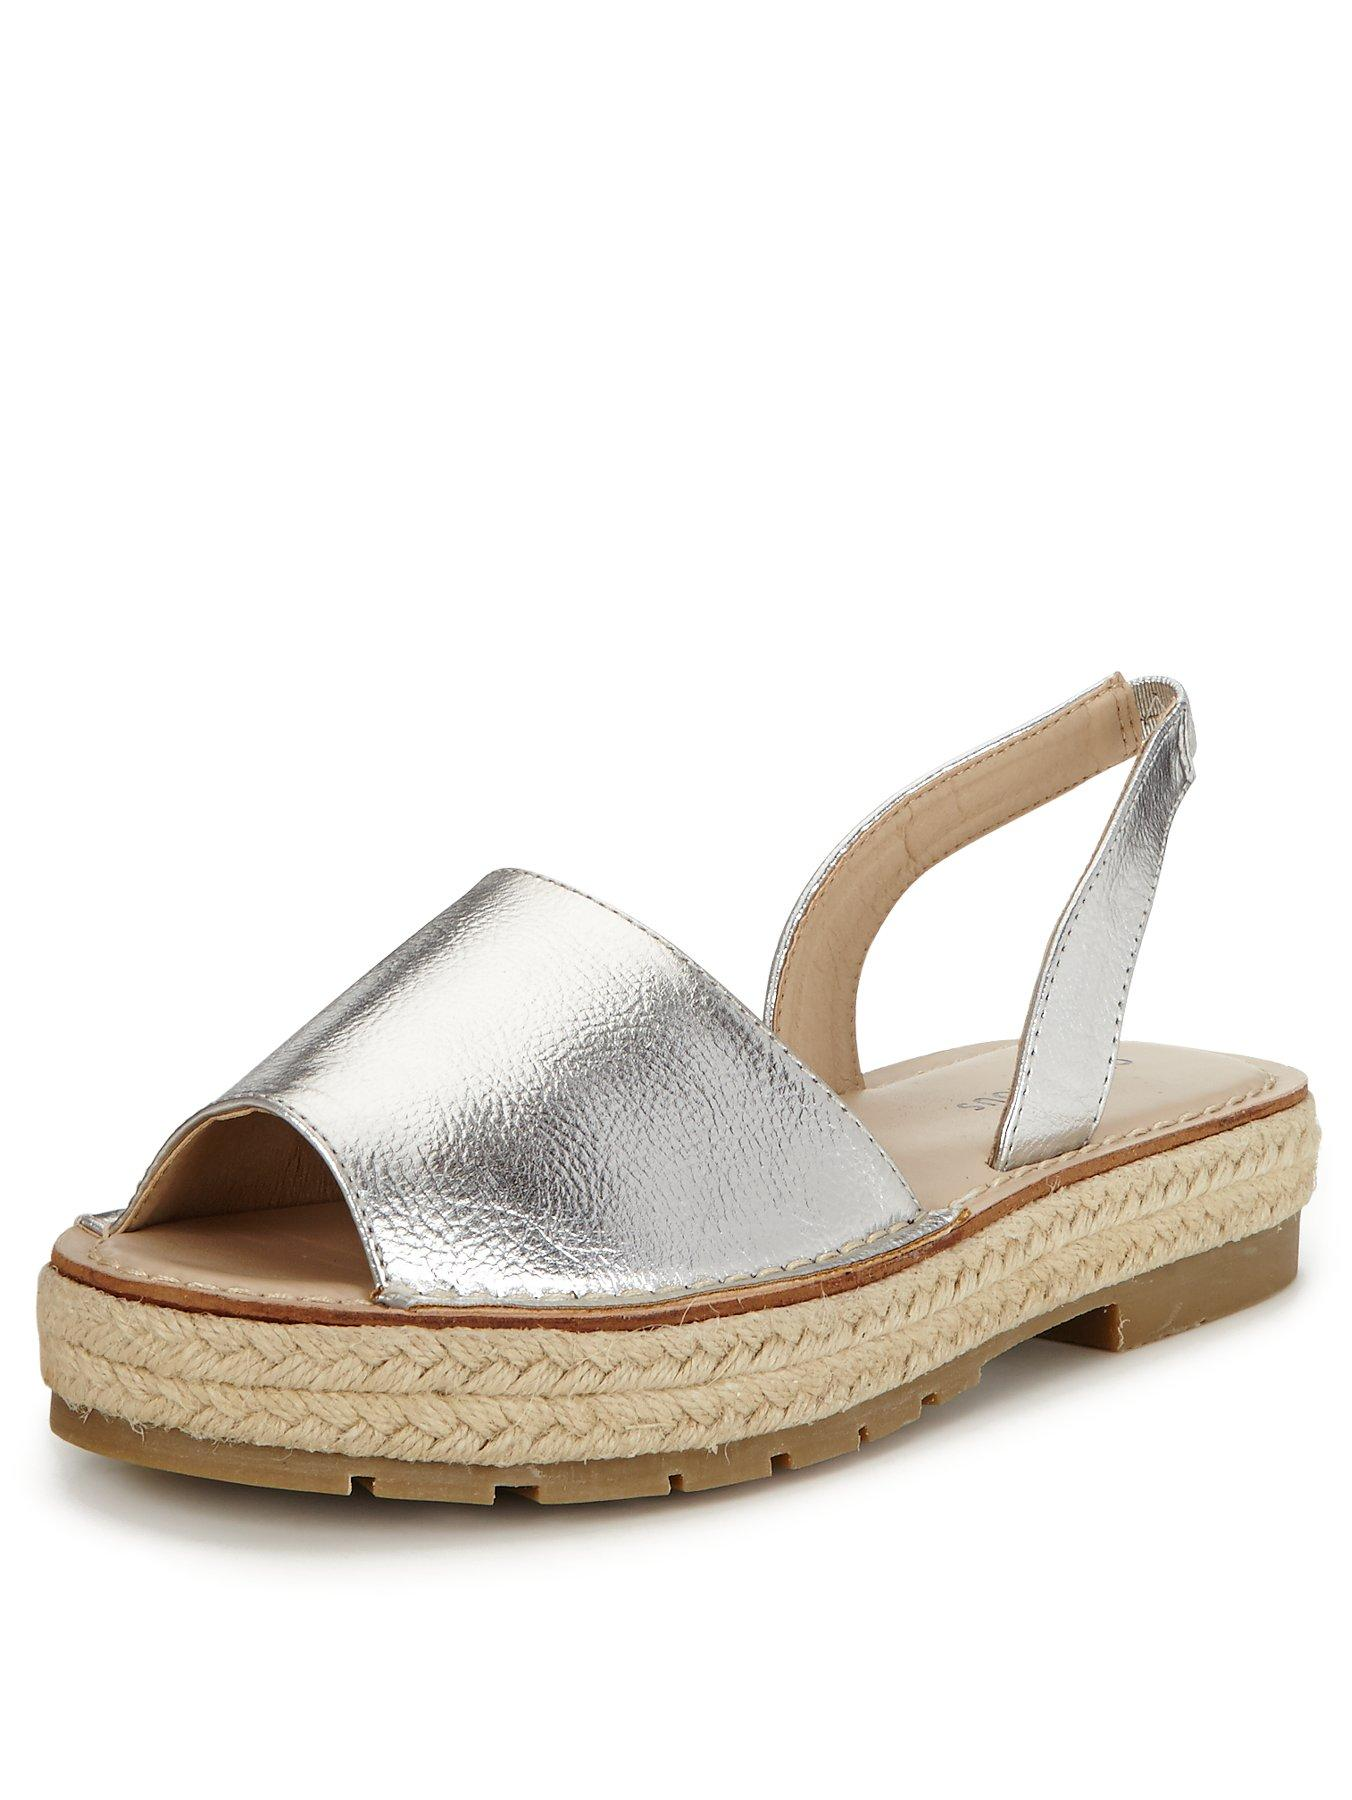 Glamorous Chunky Espadrille Sandals